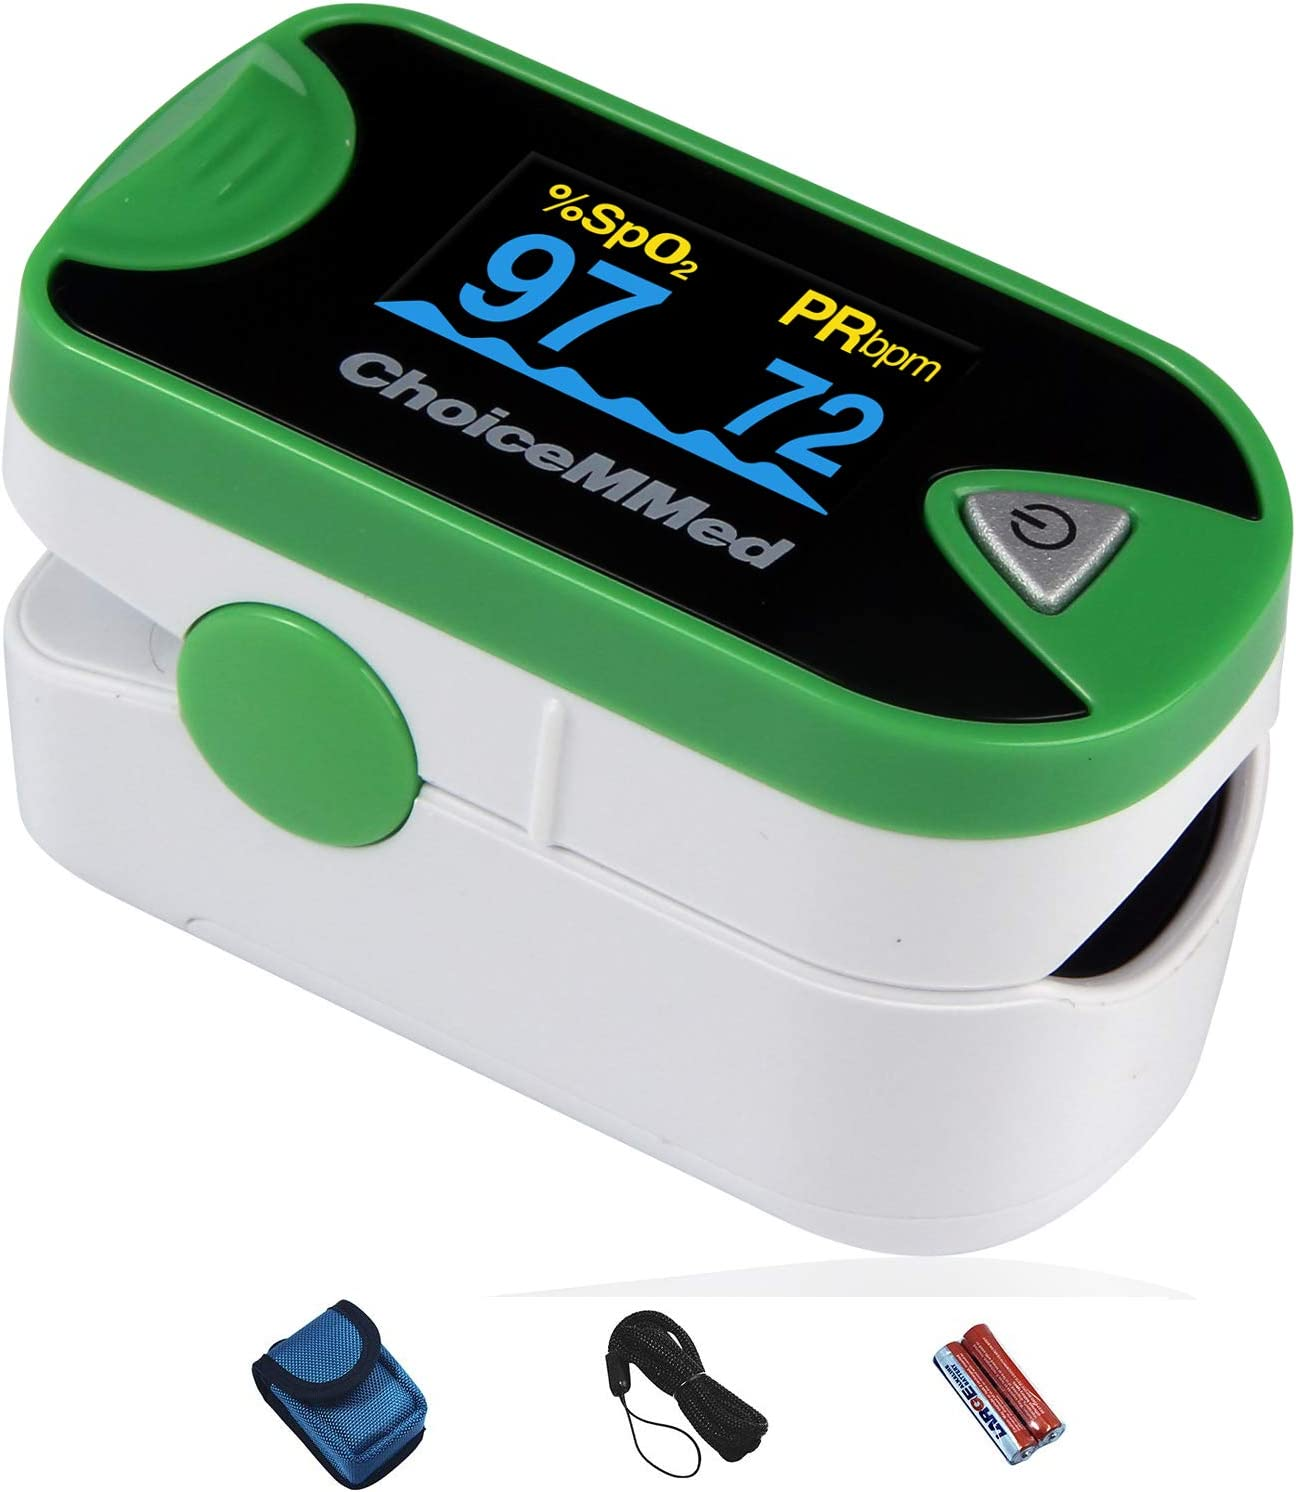 ChoiceMMed Dual Color OLED Finger Pulse Oximeter – Green – Blood Oxygen Saturation Monitor with Color OLED Screen Display and Included Batteries – O2 Saturation Monitor